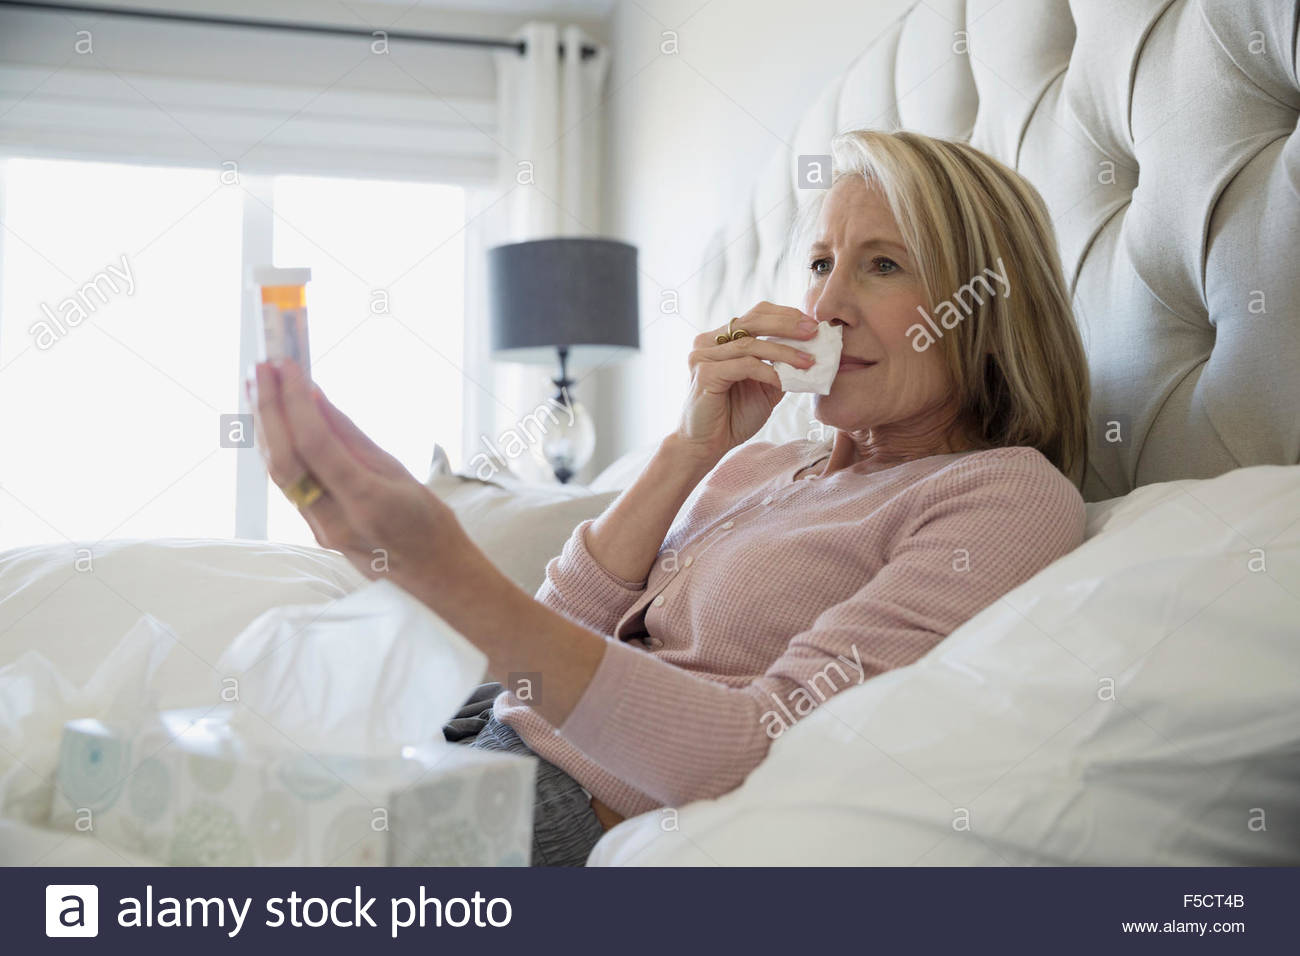 Sick woman with tissues prescription bottle in bed - Stock Image